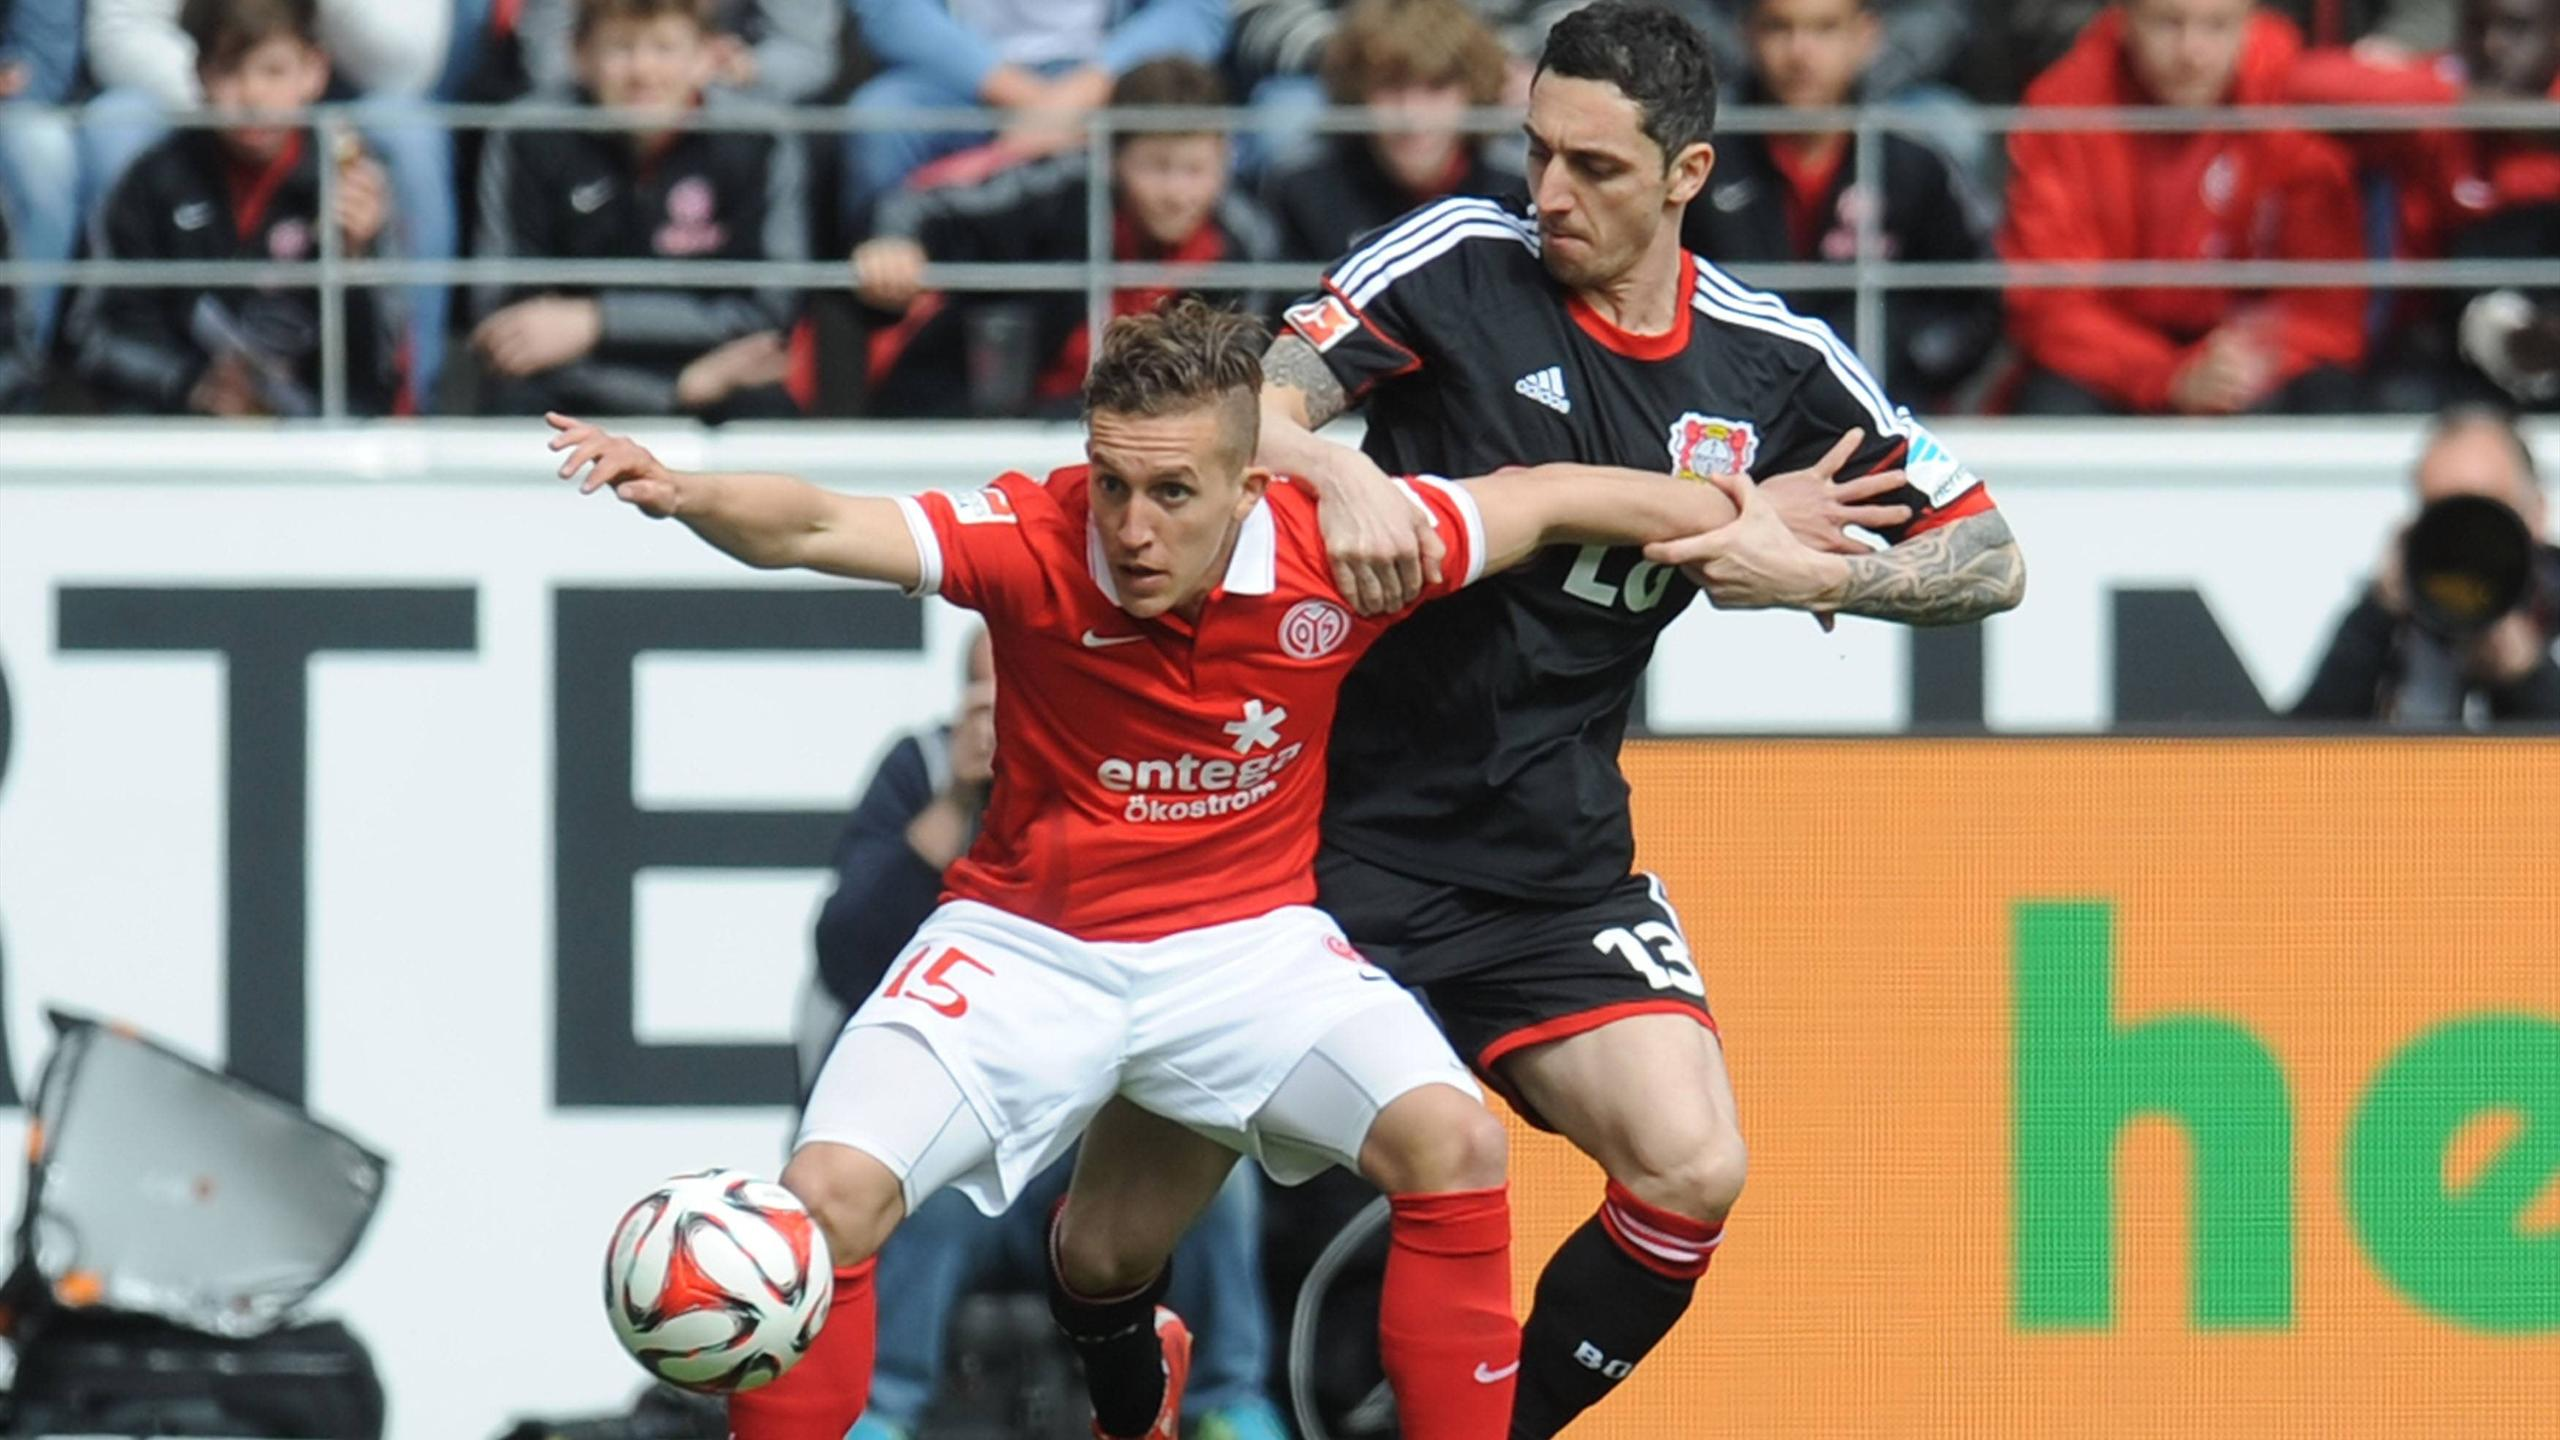 Video: Mainz 05 vs Bayer Leverkusen